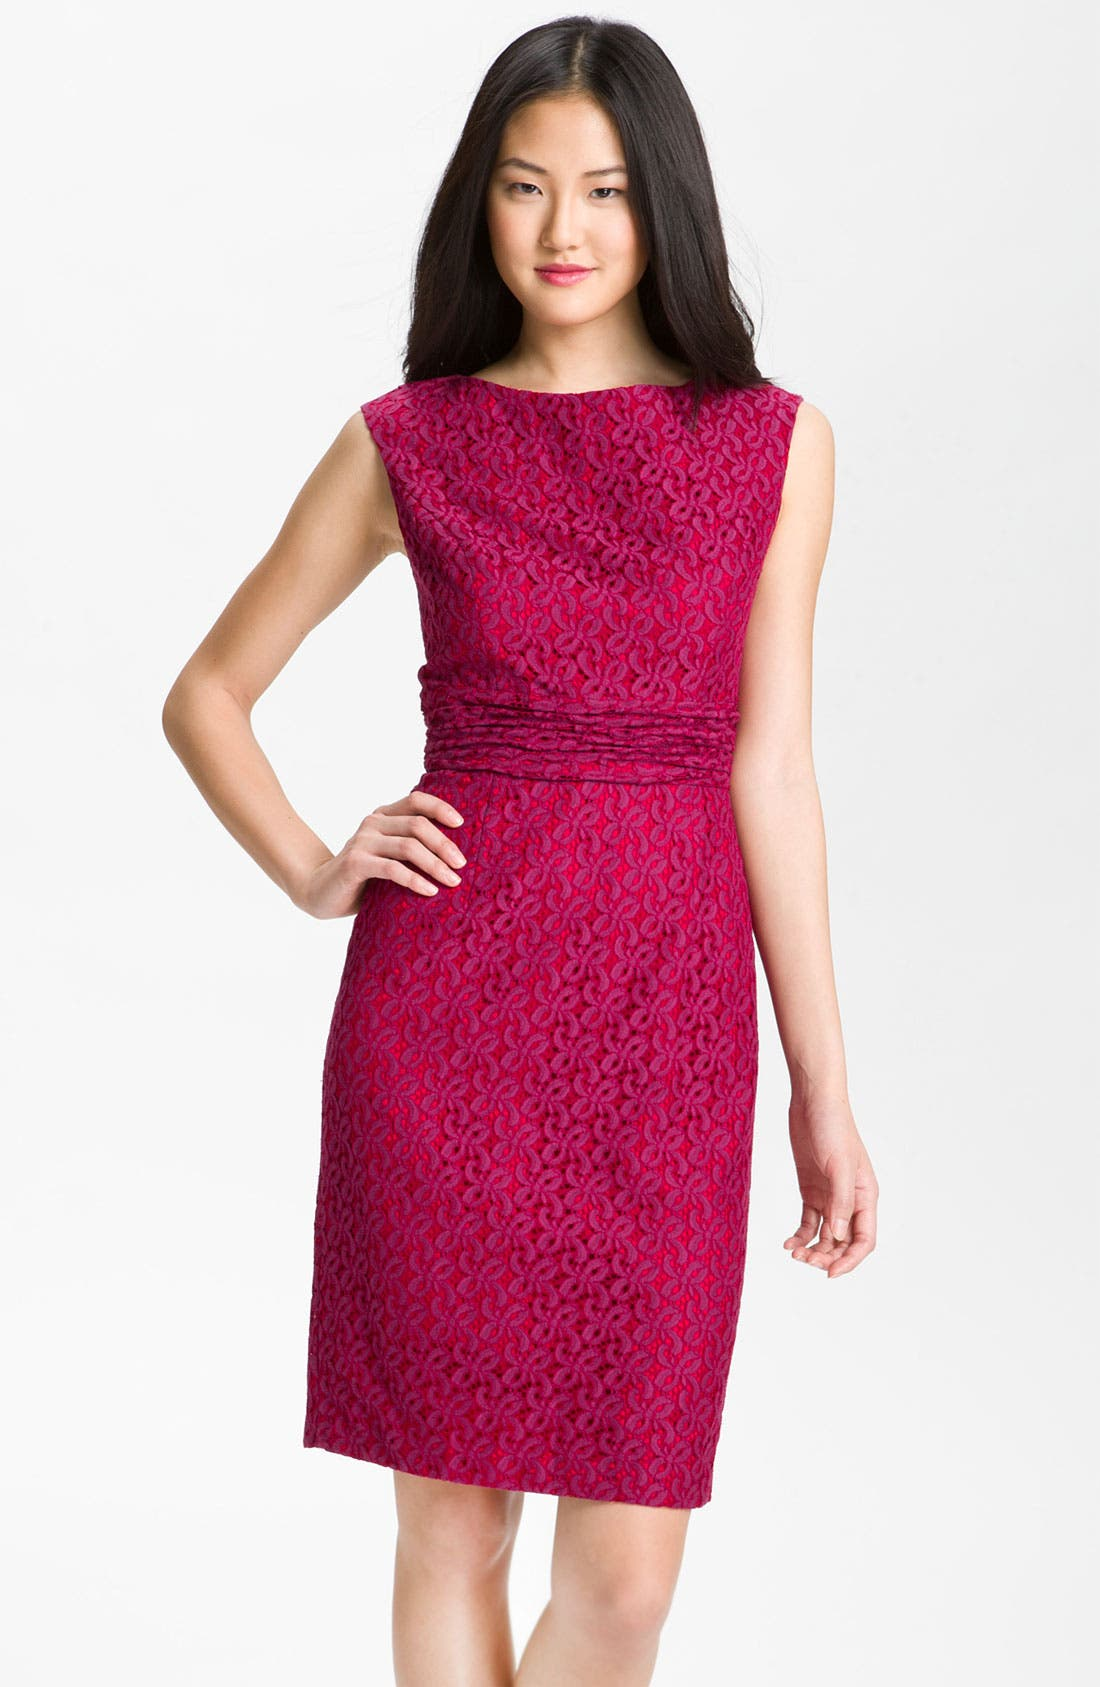 Alternate Image 1 Selected - Adrianna Papell Empire Waist Lace Sheath Dress